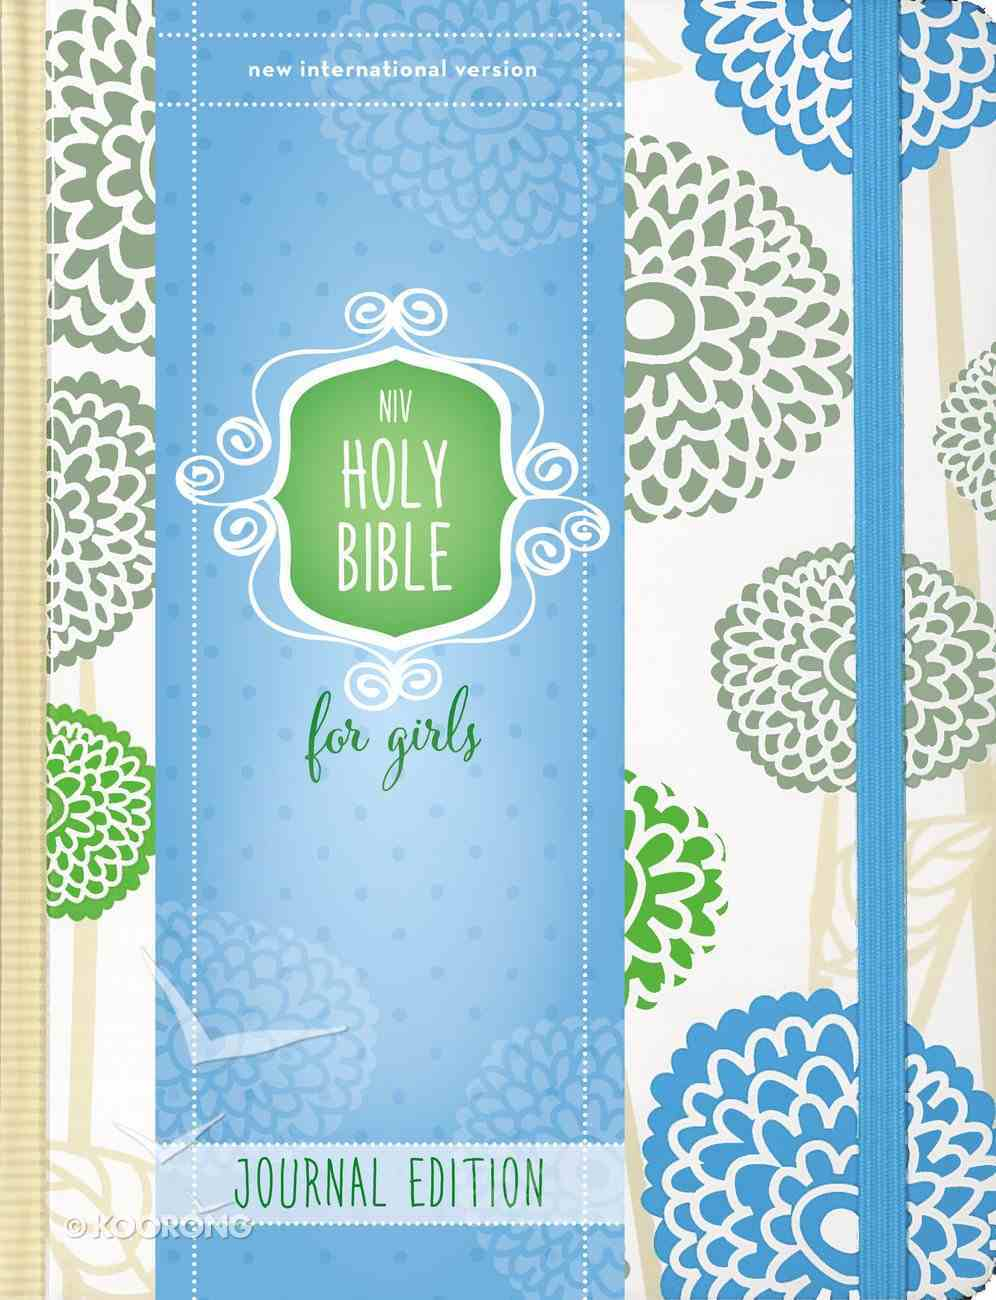 NIV Holy Bible For Girls Journal Edition Mint Elastic Closure (Black Letter Edition) Hardback